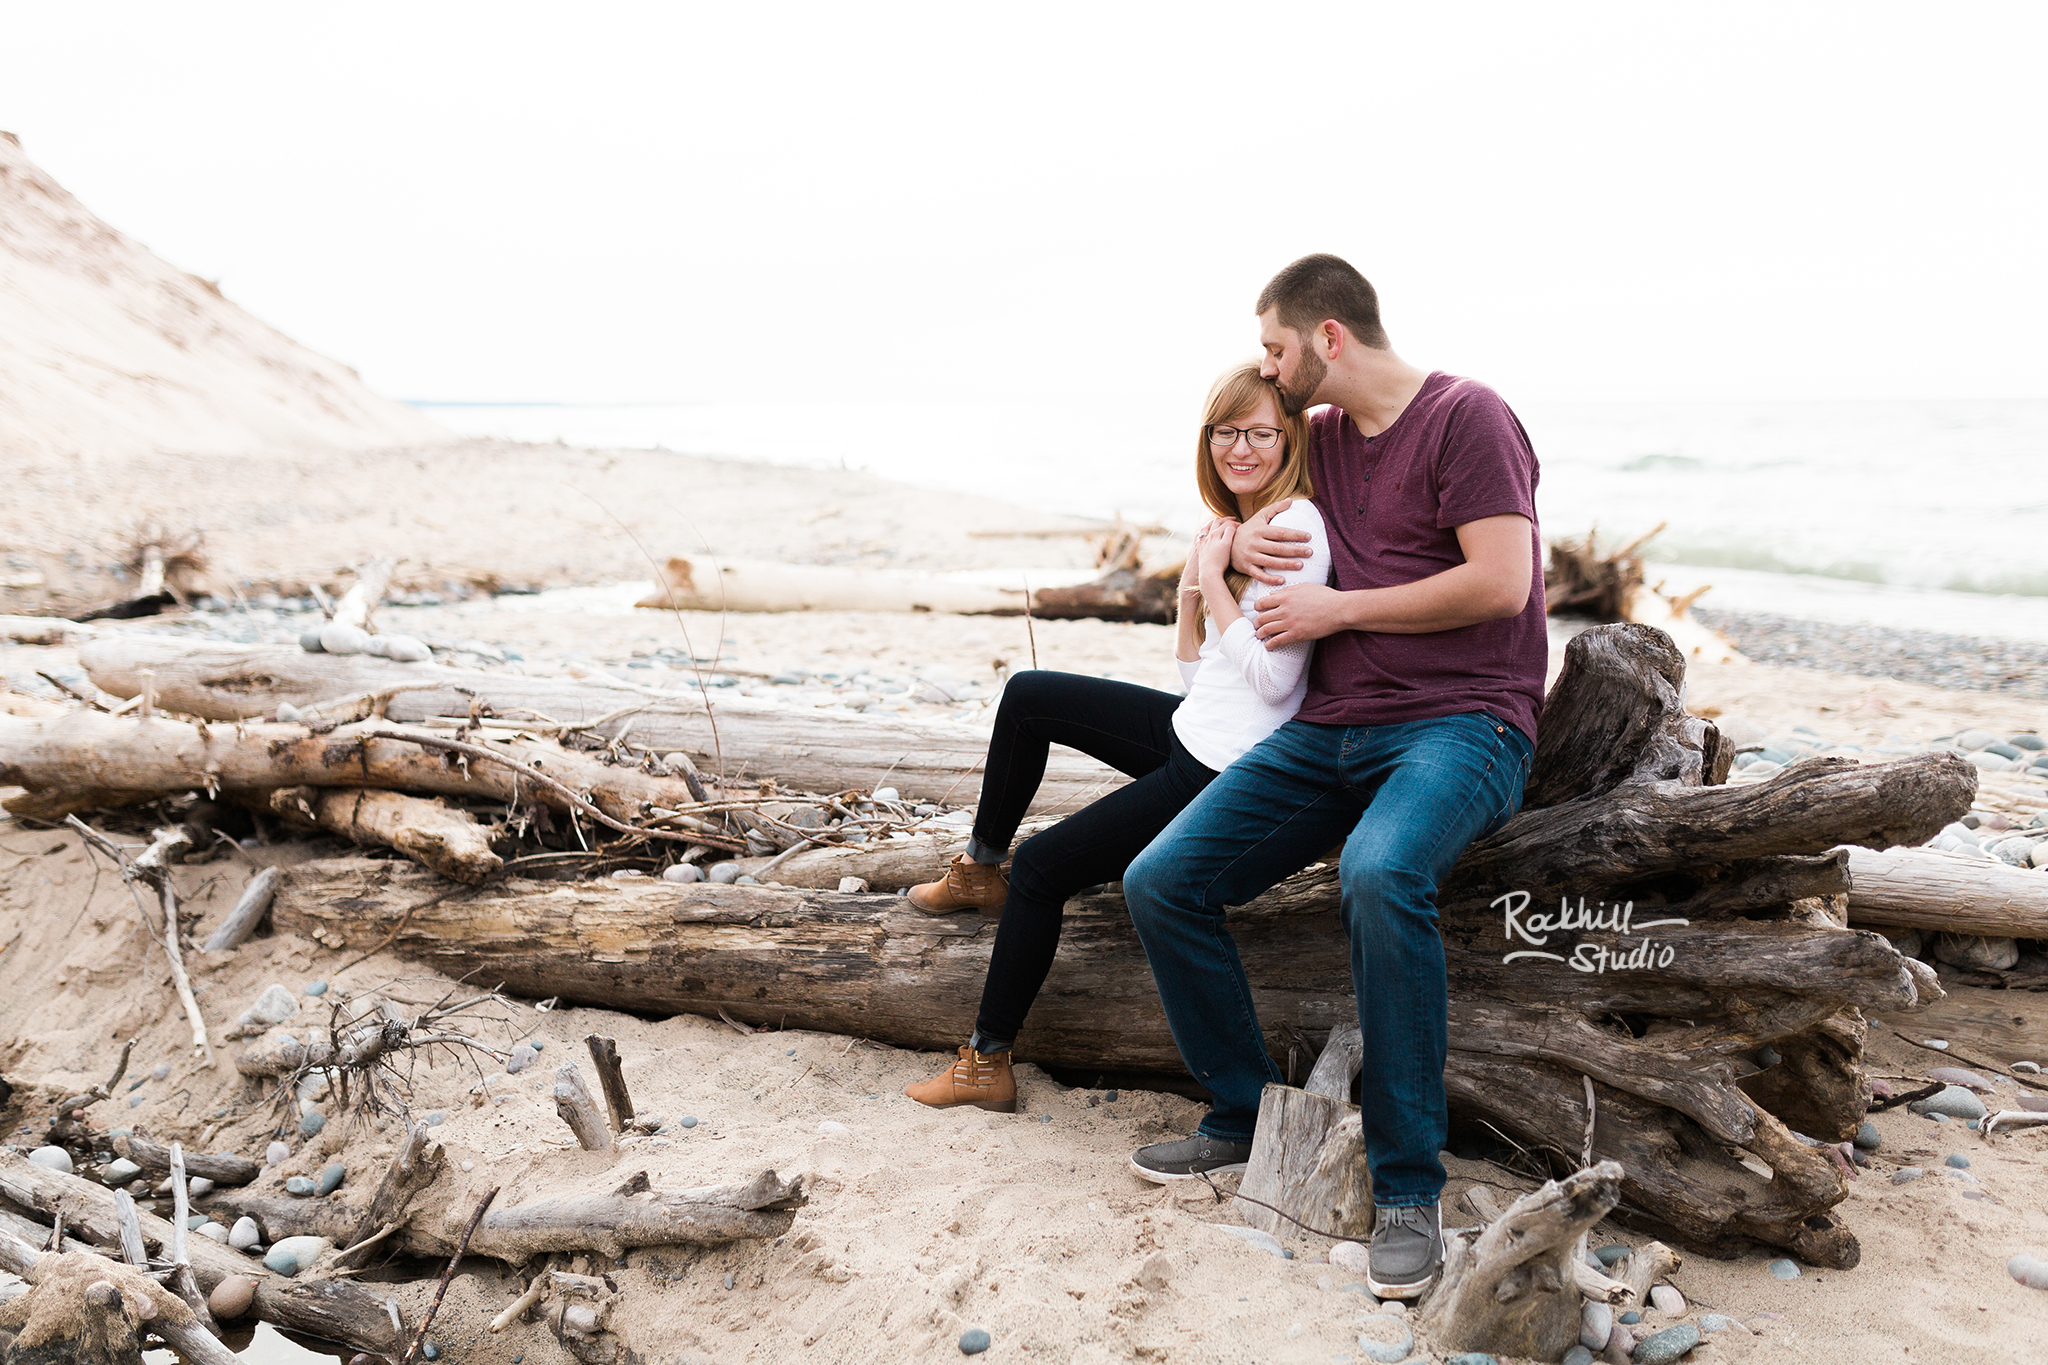 northern-michigan-wedding-engagement-photographer-grand-marais-rockhill-jj-12.jpg